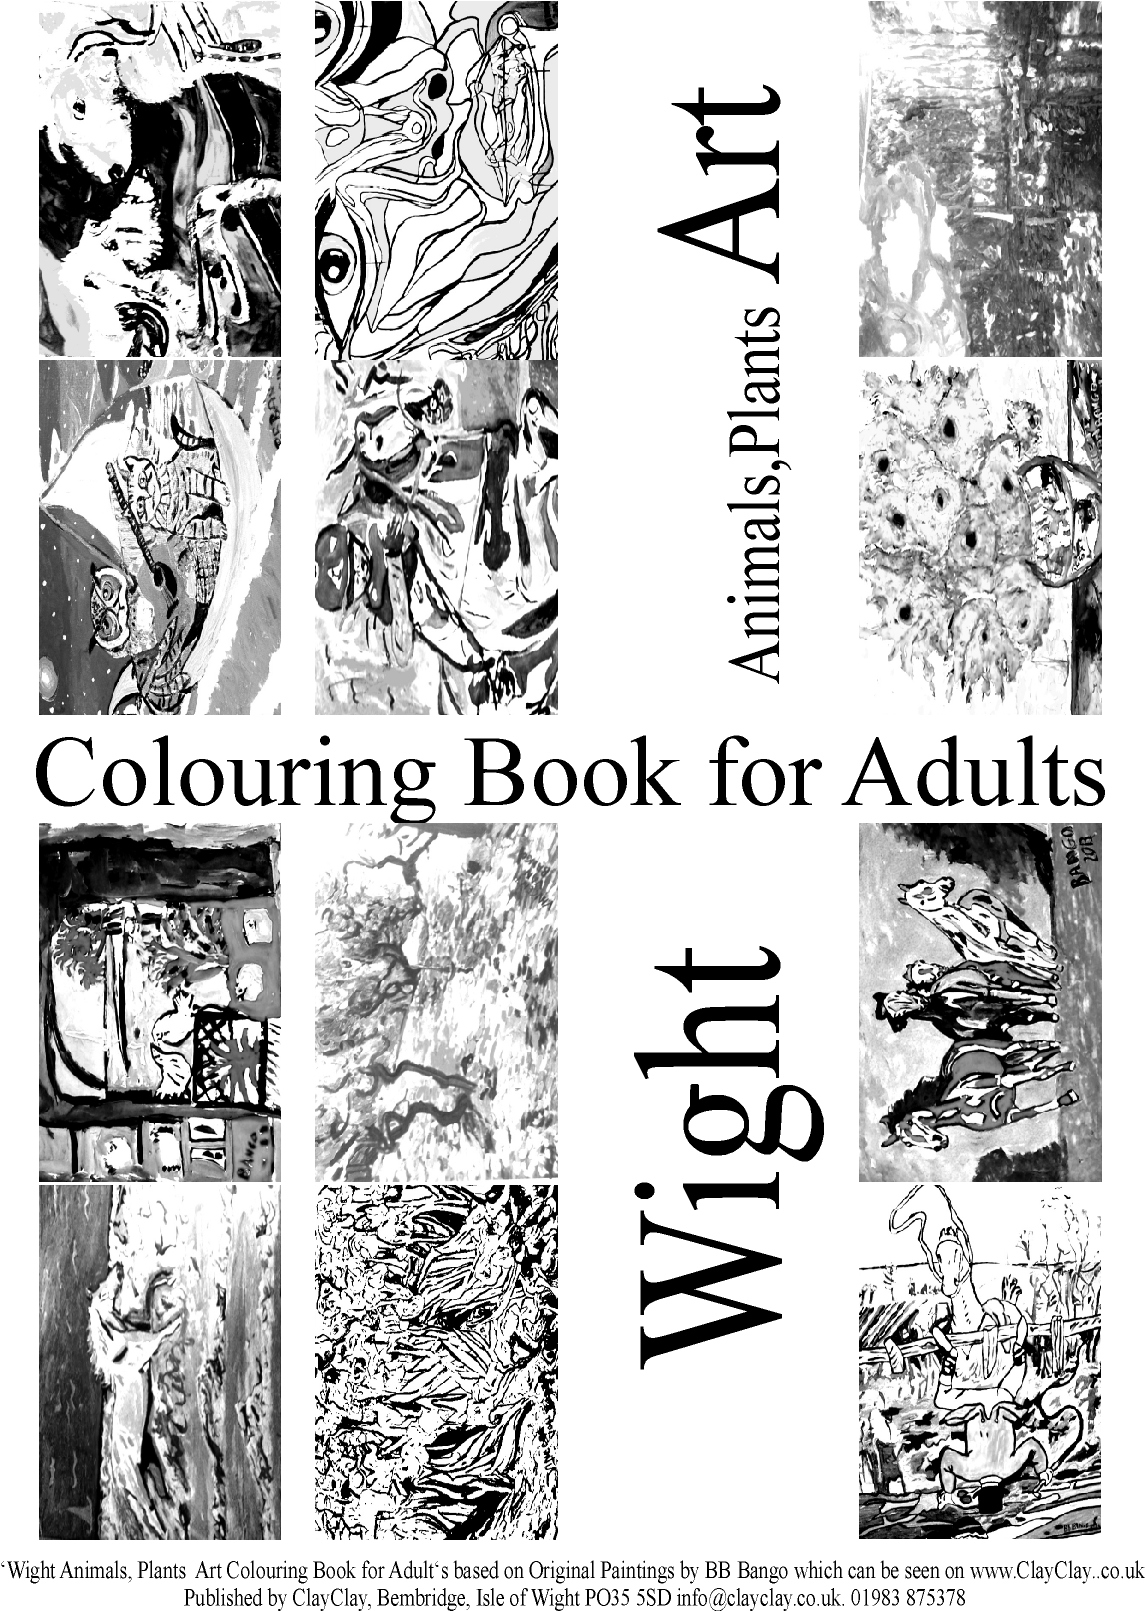 Animals and Plants. 'Coloring (colouring) books for Adults' 12 paintings per book various themes. Use your own crayons, pastels, fibre tipped pens, ink, watercolour, acrylic or oil paints. £5 per book plus £2.50 postage and packing. E mail us your requirements